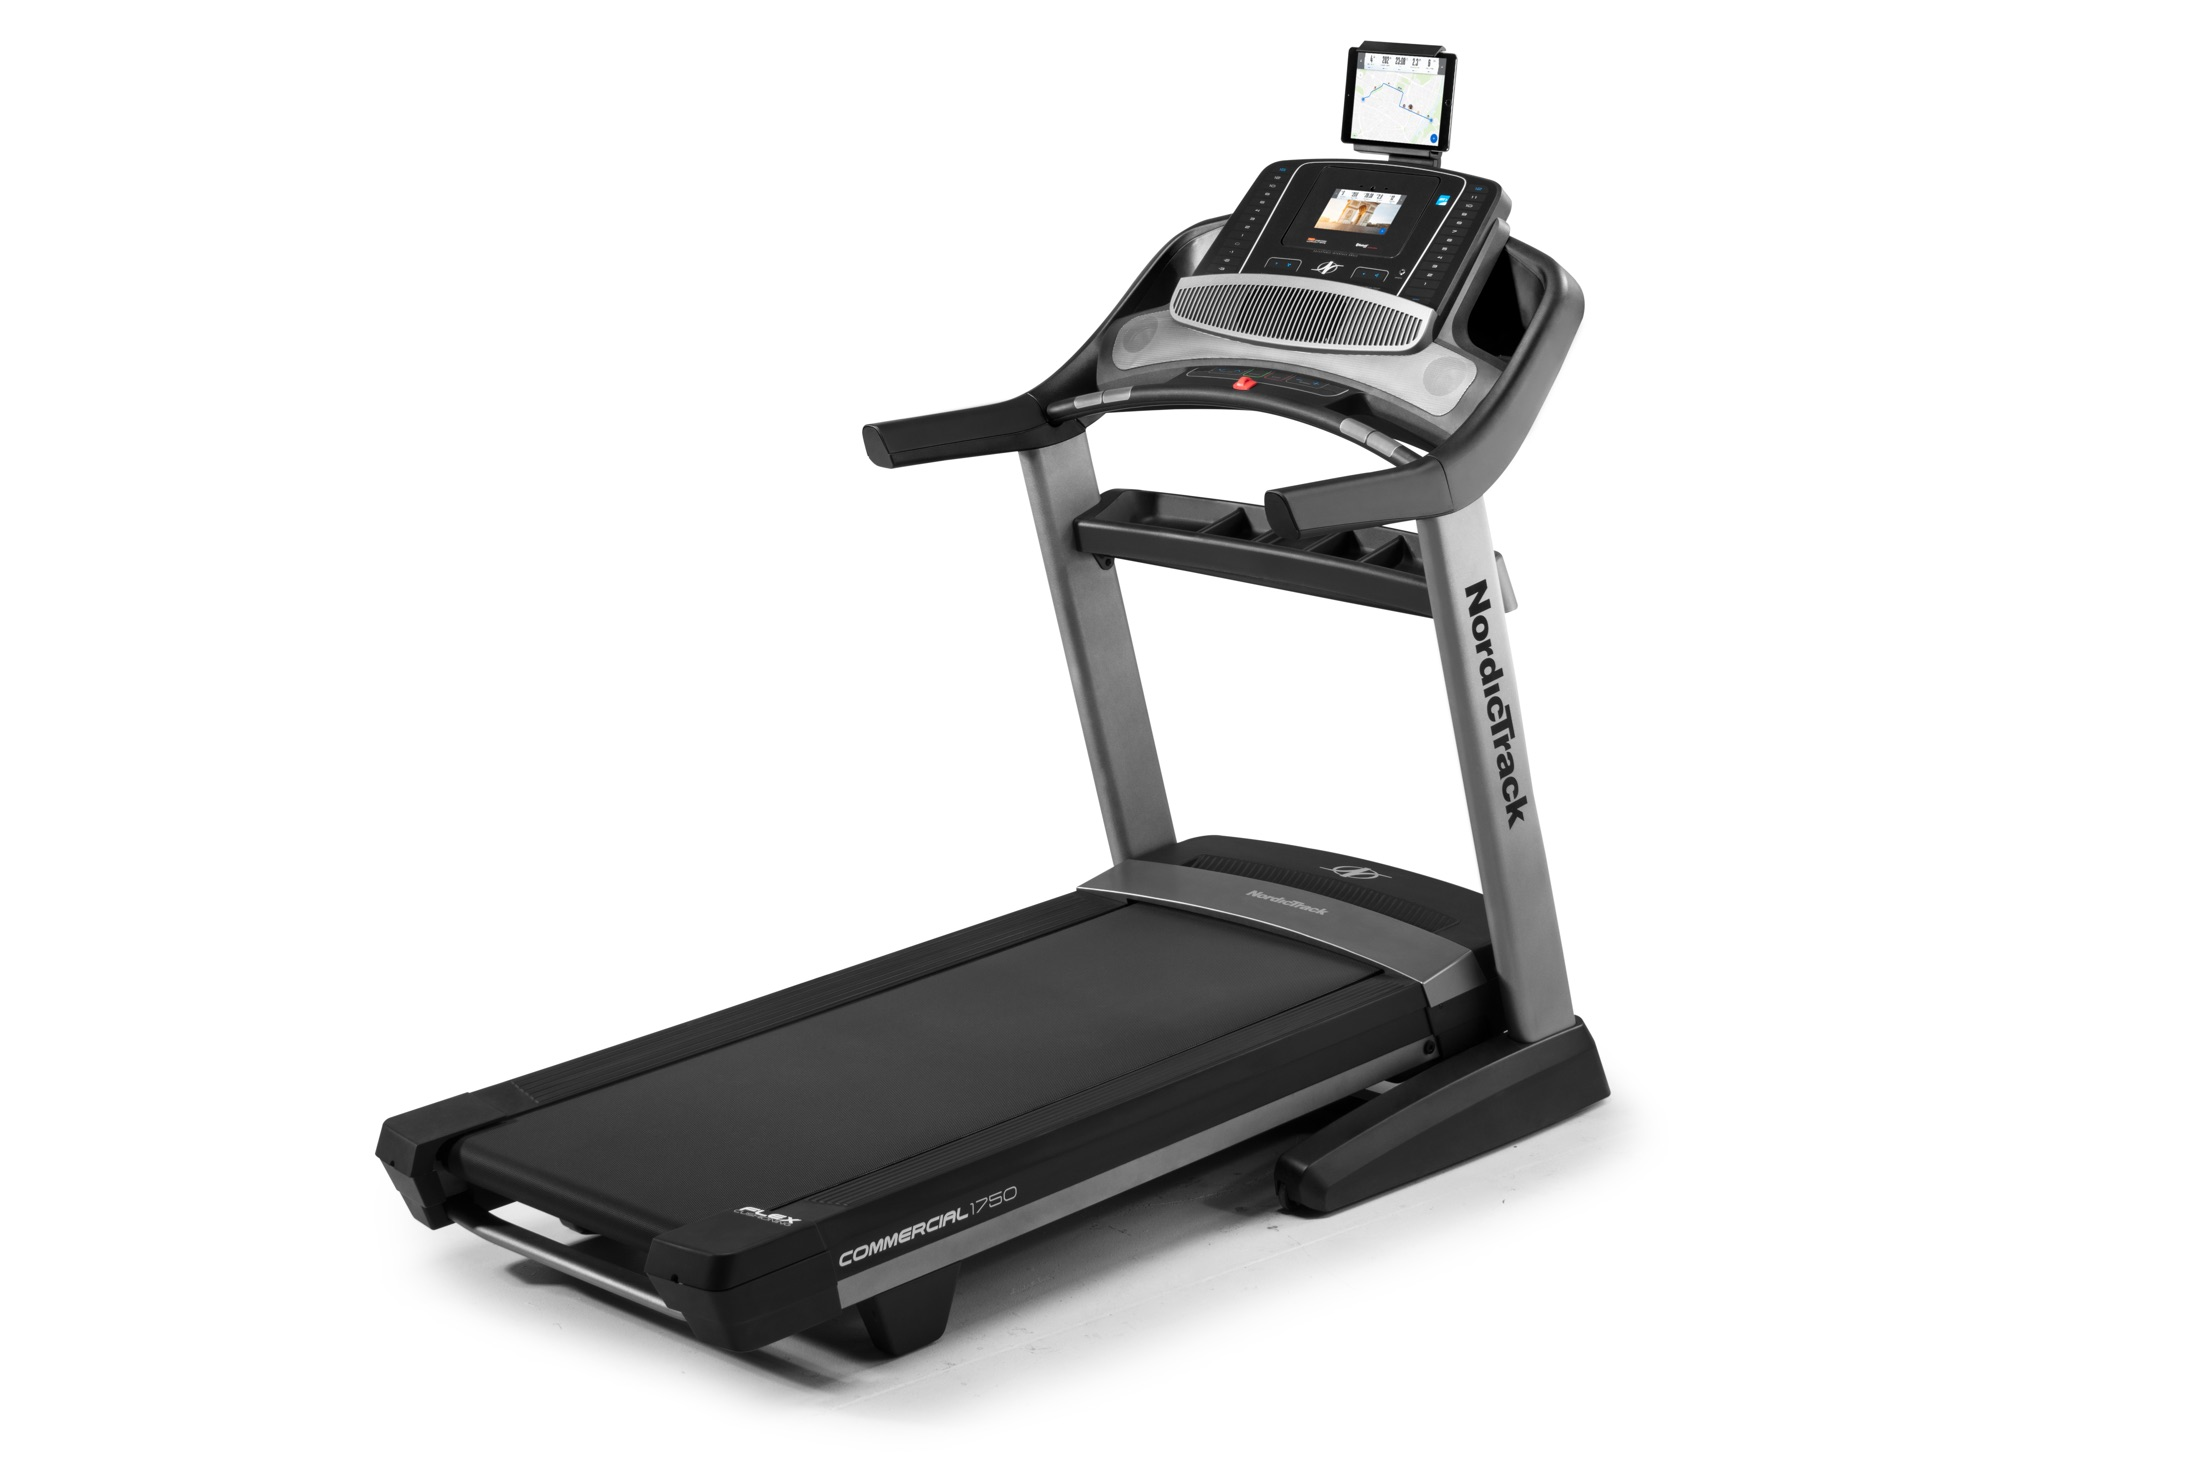 NordicTrack Commercial 1750 - 2021 Model With iFit & Large Touch Screen